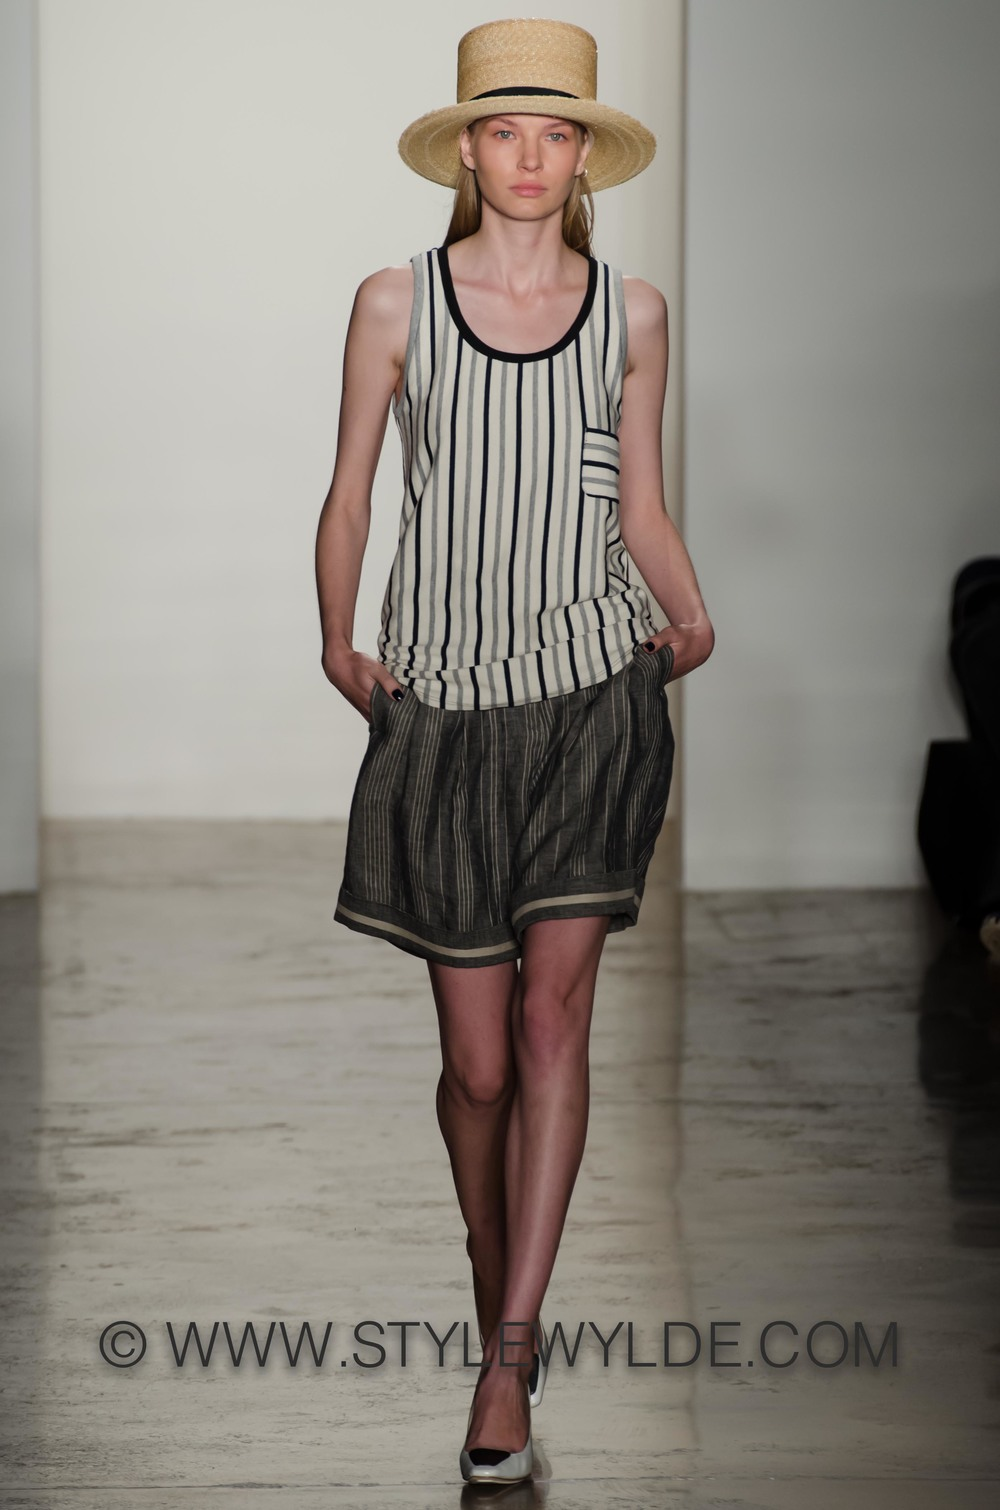 stylewylde_timo_weiland_gallery_ss2014-6.jpg